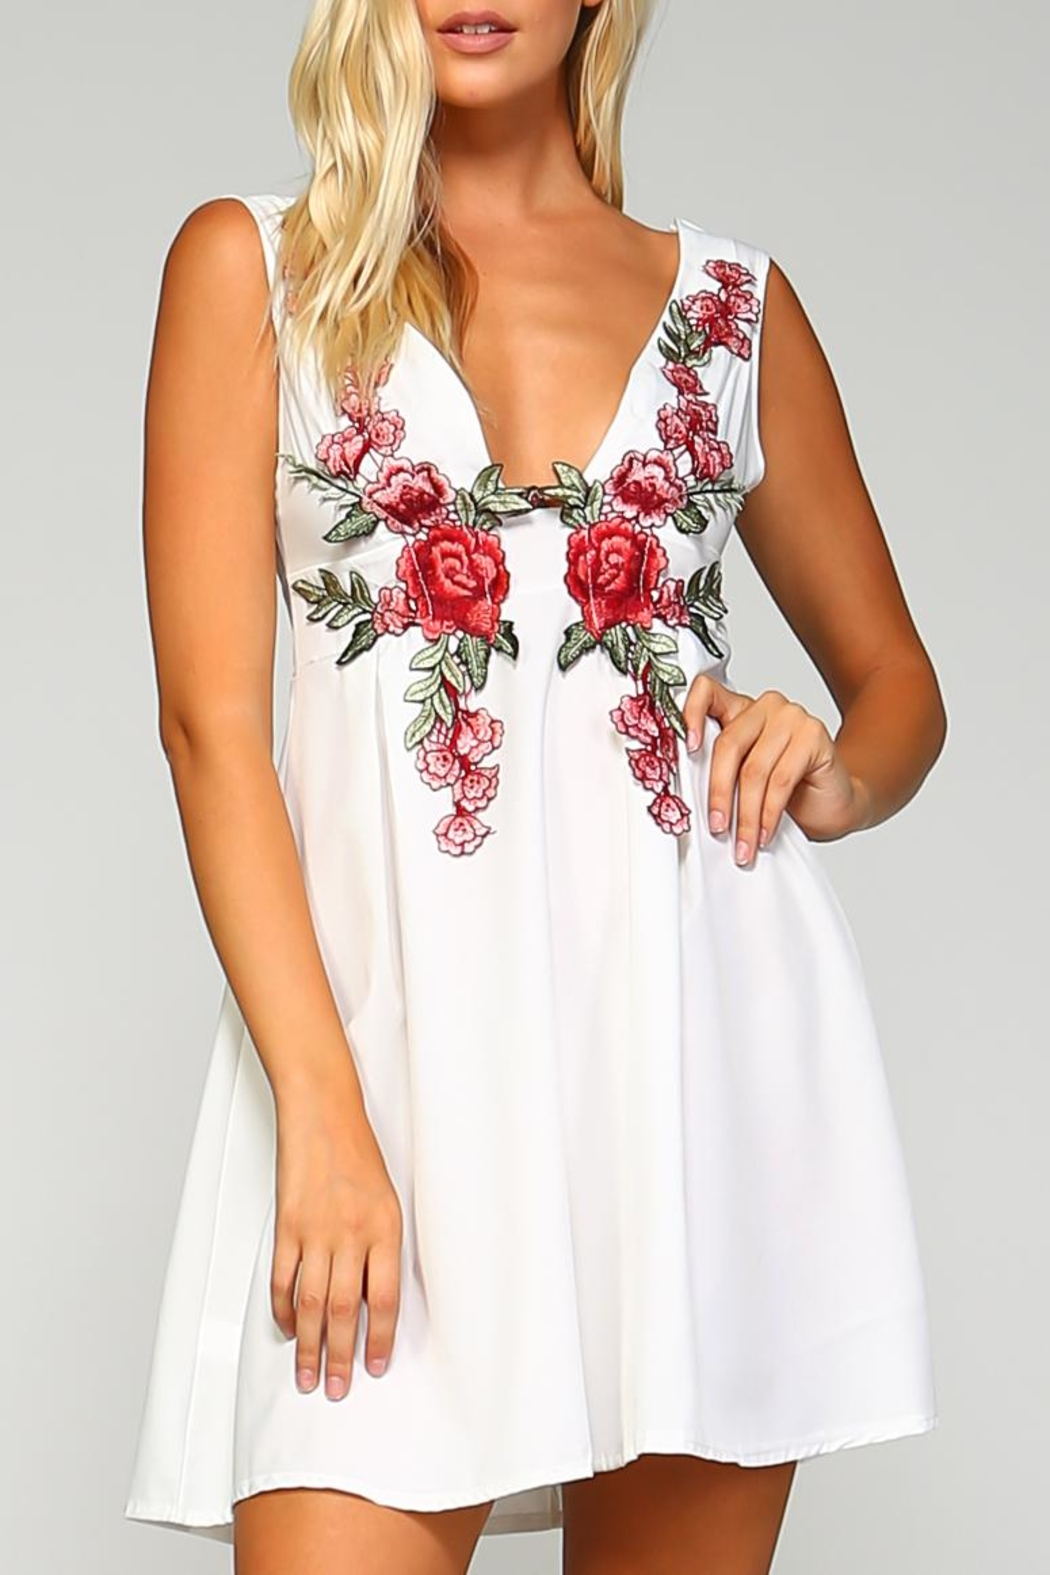 Racine Floral Embroidered Dress - Main Image